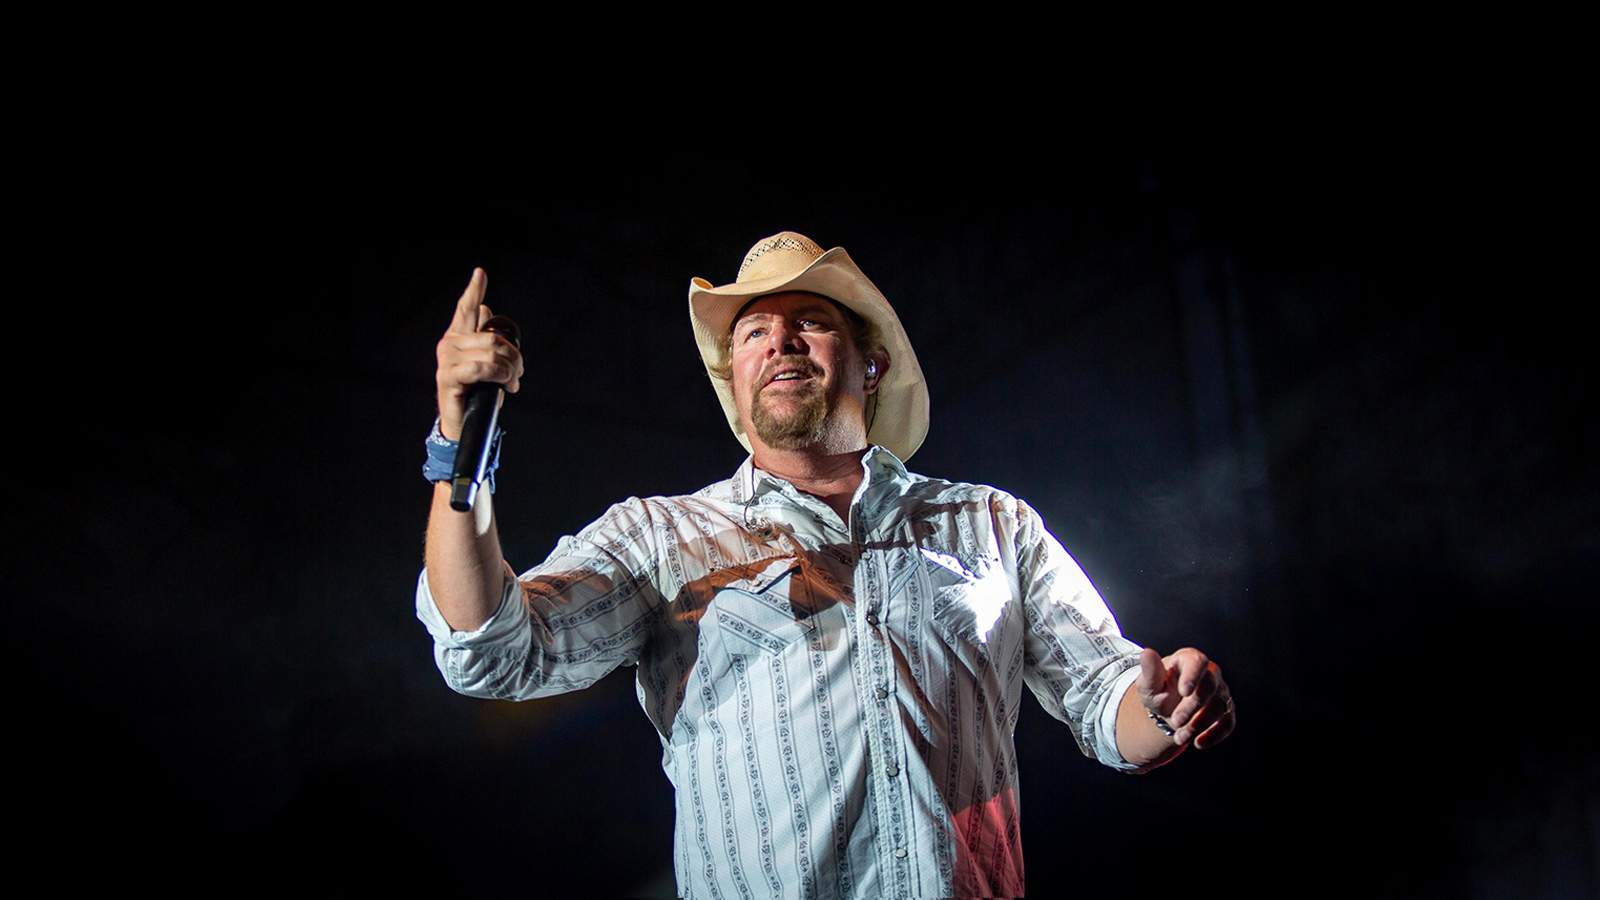 Toby Keith (Rescheduled from 6/5/2020, 8/28/2020)